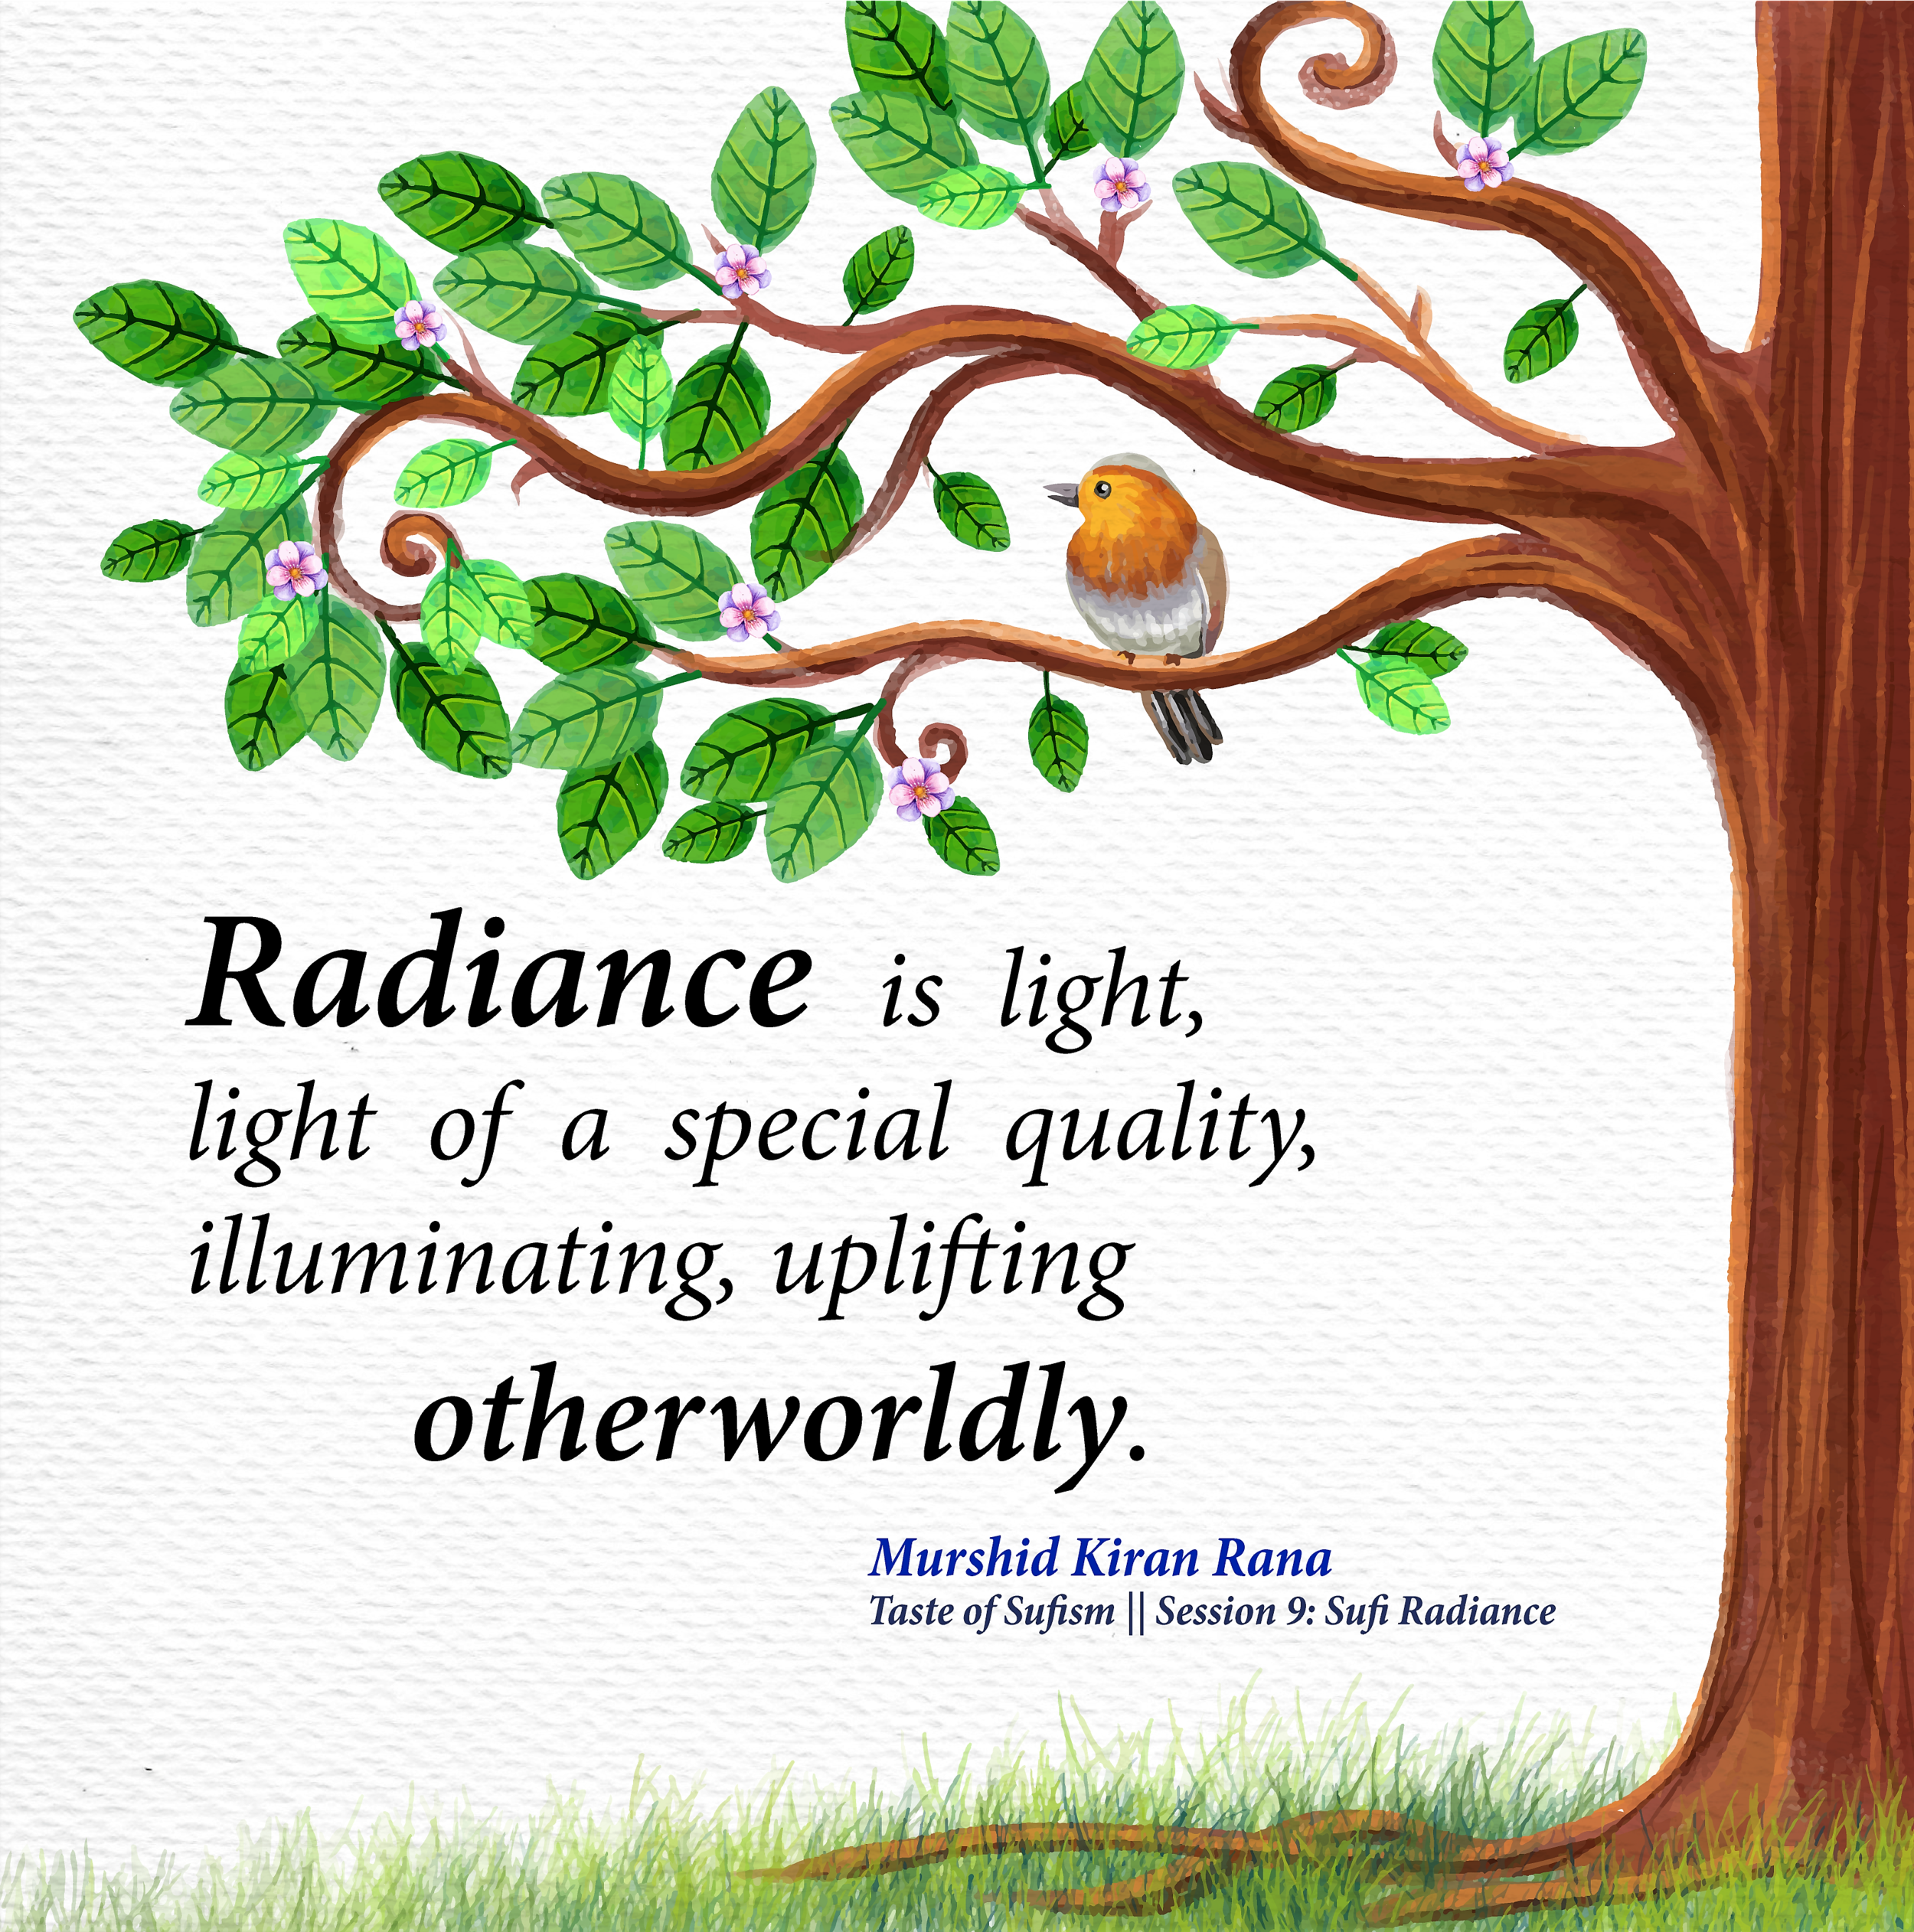 Quote from Sufi Radiance.png